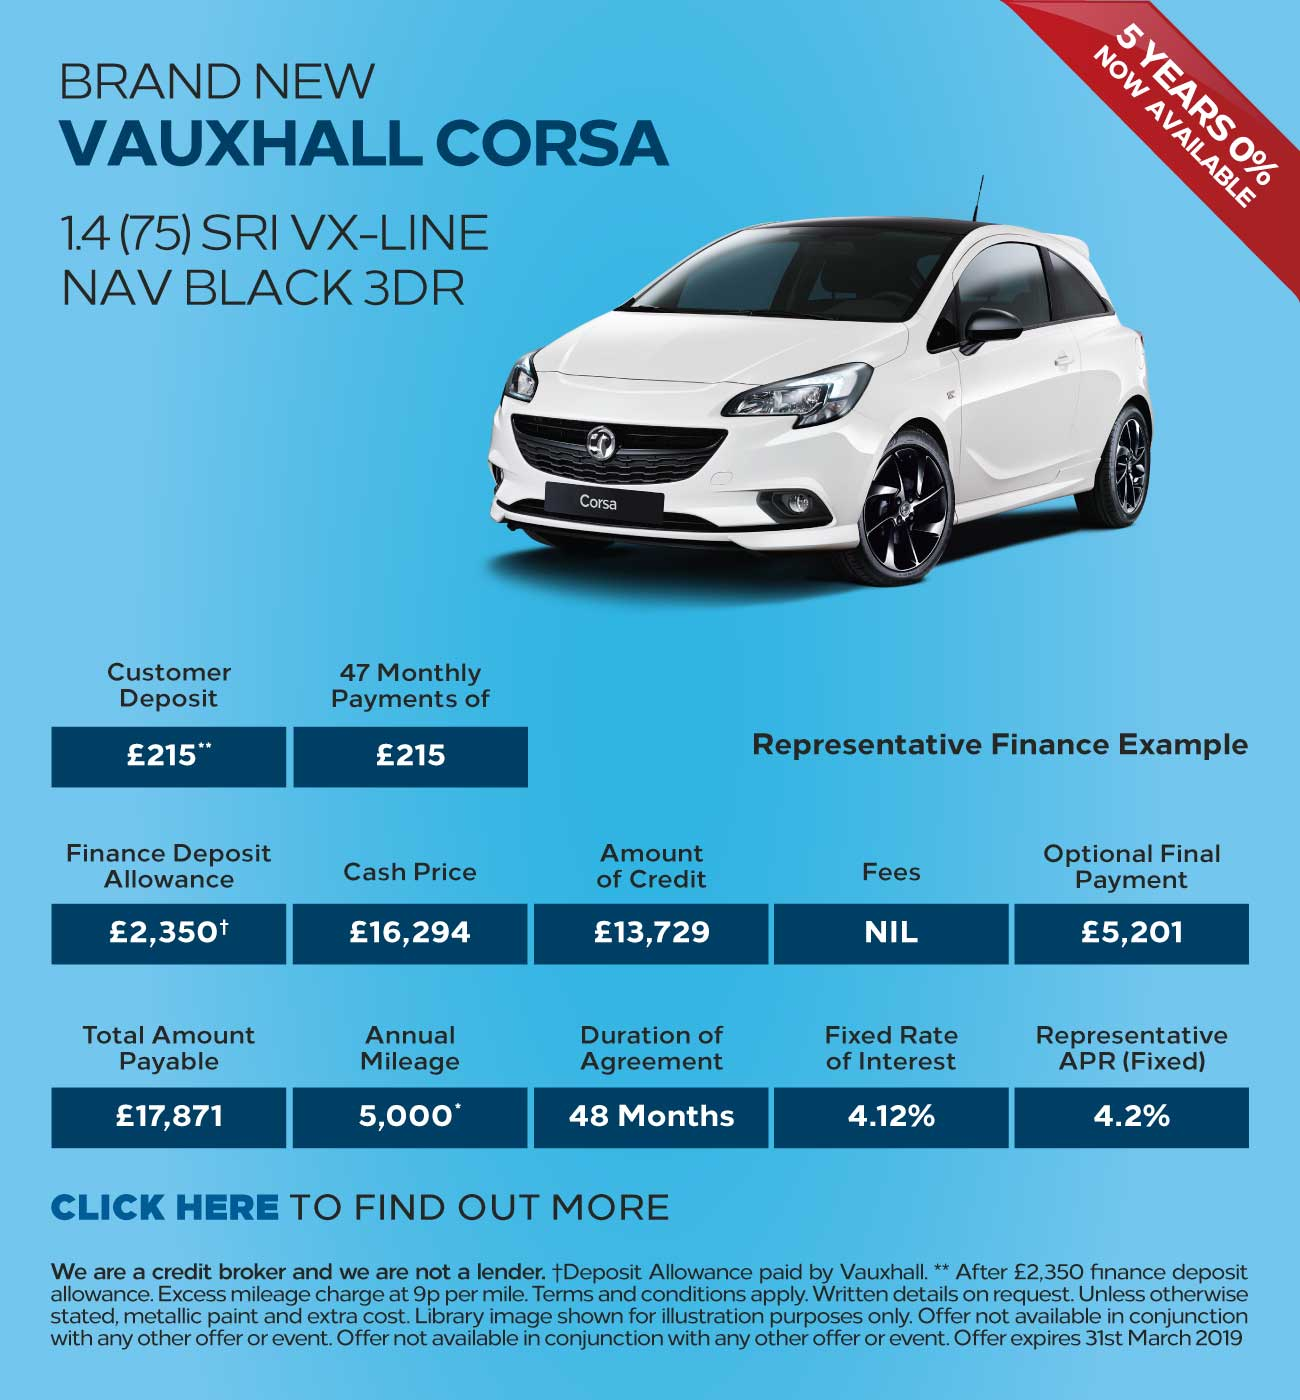 Vauxhall Corsa ENERGY Deals